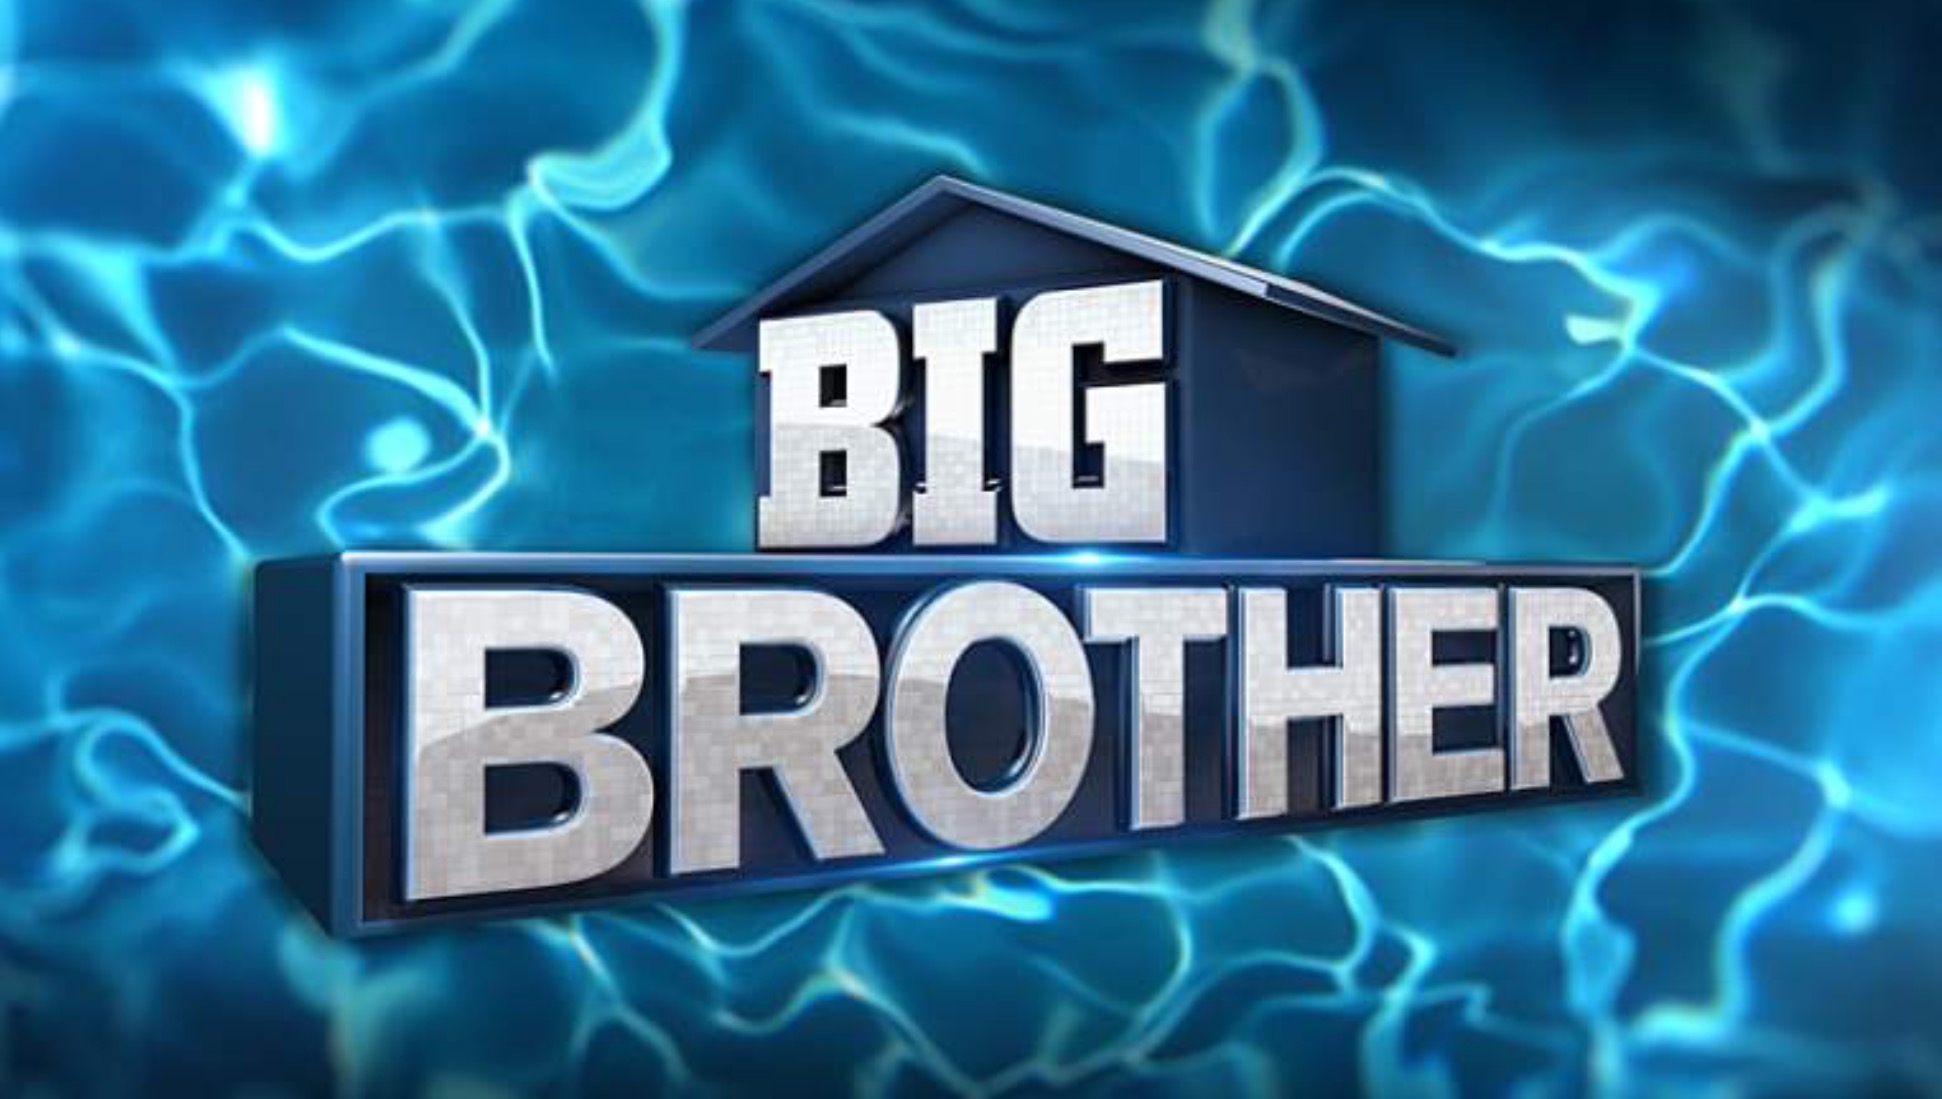 Would you win Big Brother?